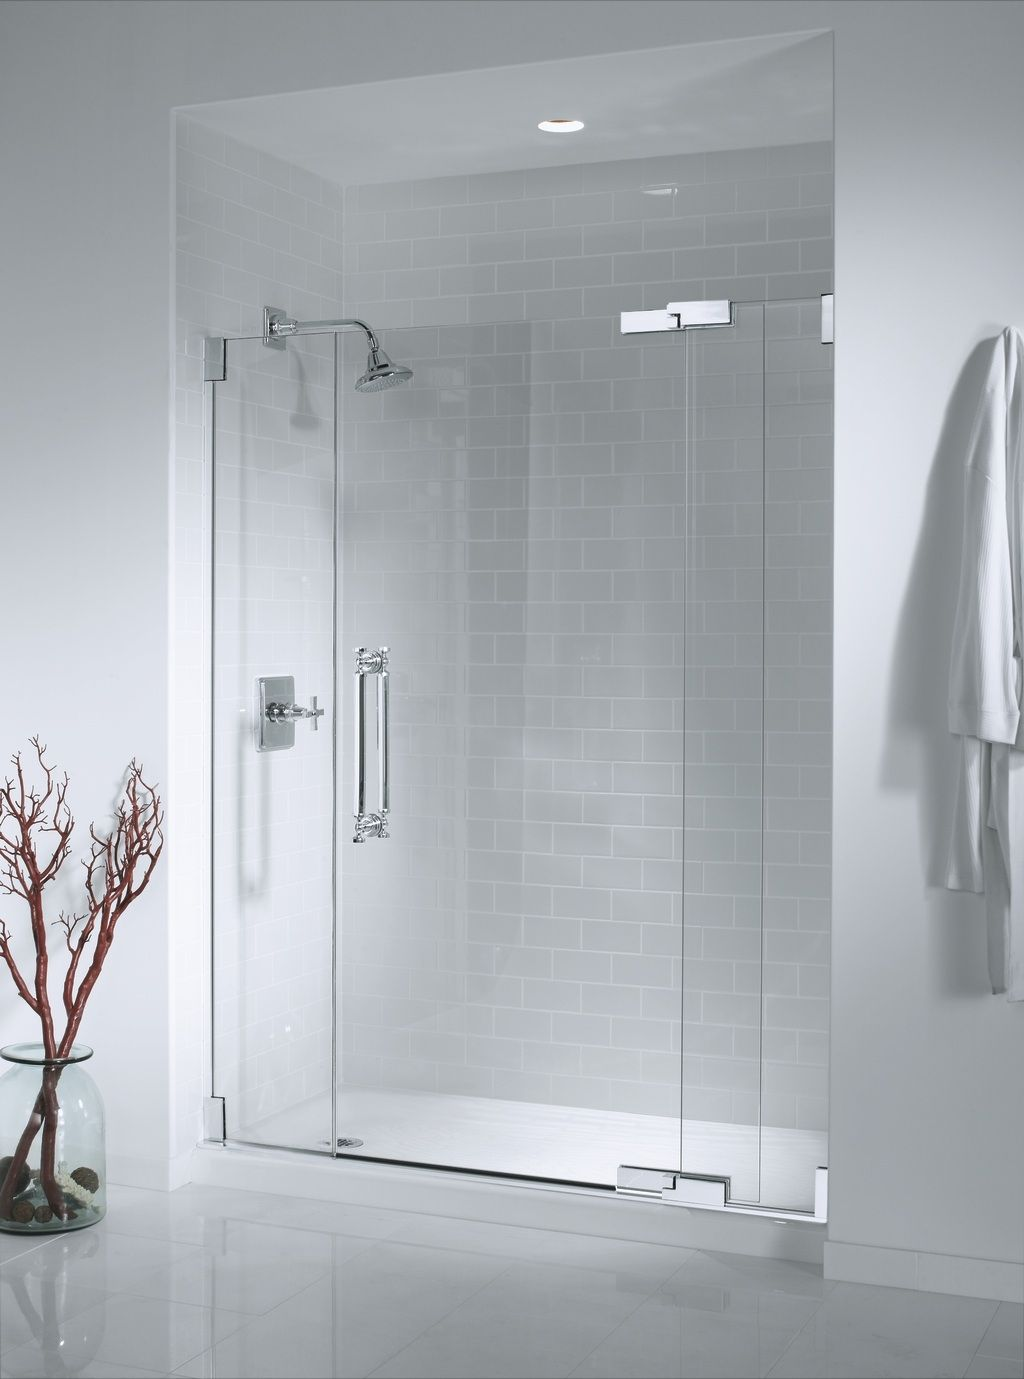 Bathroom showers head - Luxury Minimalist White Bathroom Shower Design With White Wall And White Floor Color And Frameless Glass Cool Bathroom Decor With Modern Shower Heads